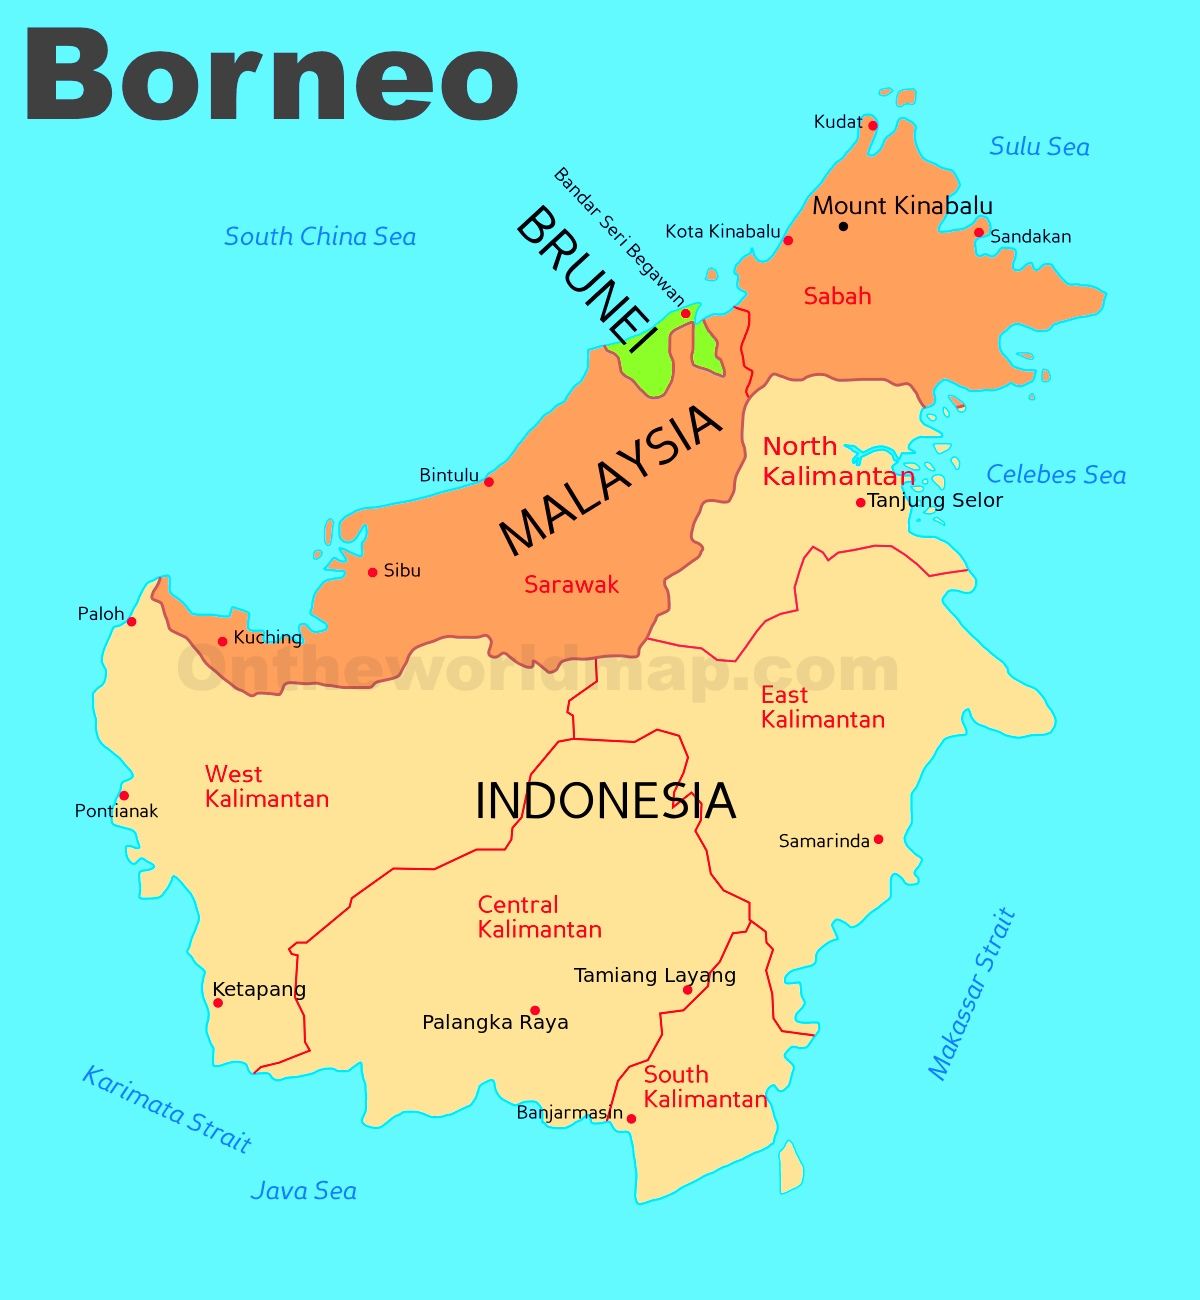 Borneo Maps | Indonesia | Maps of Borneo Island (Kalimantan)